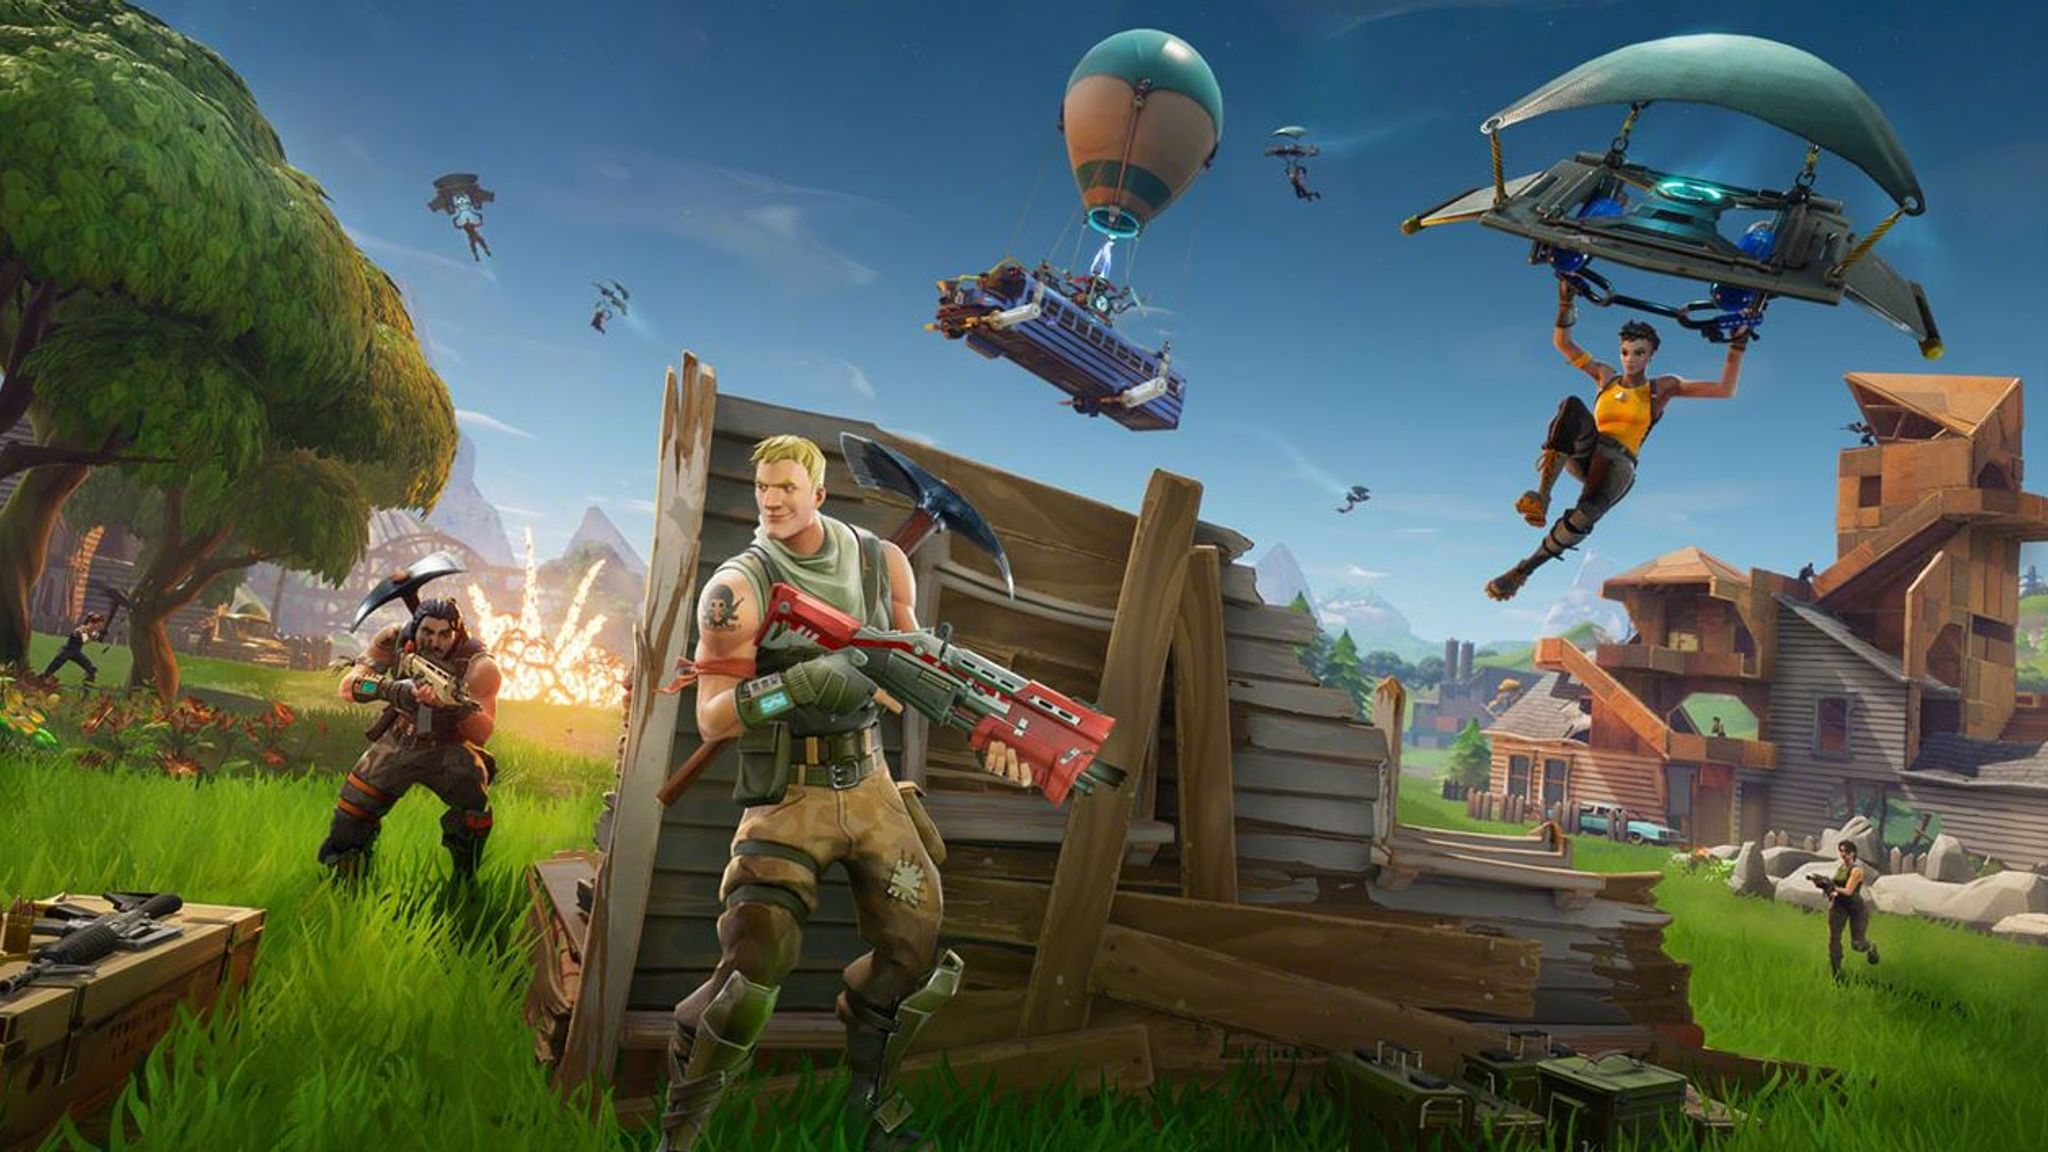 Fortnite Maker Epic Games Sues Youtuber Over Cheating In Hit Video